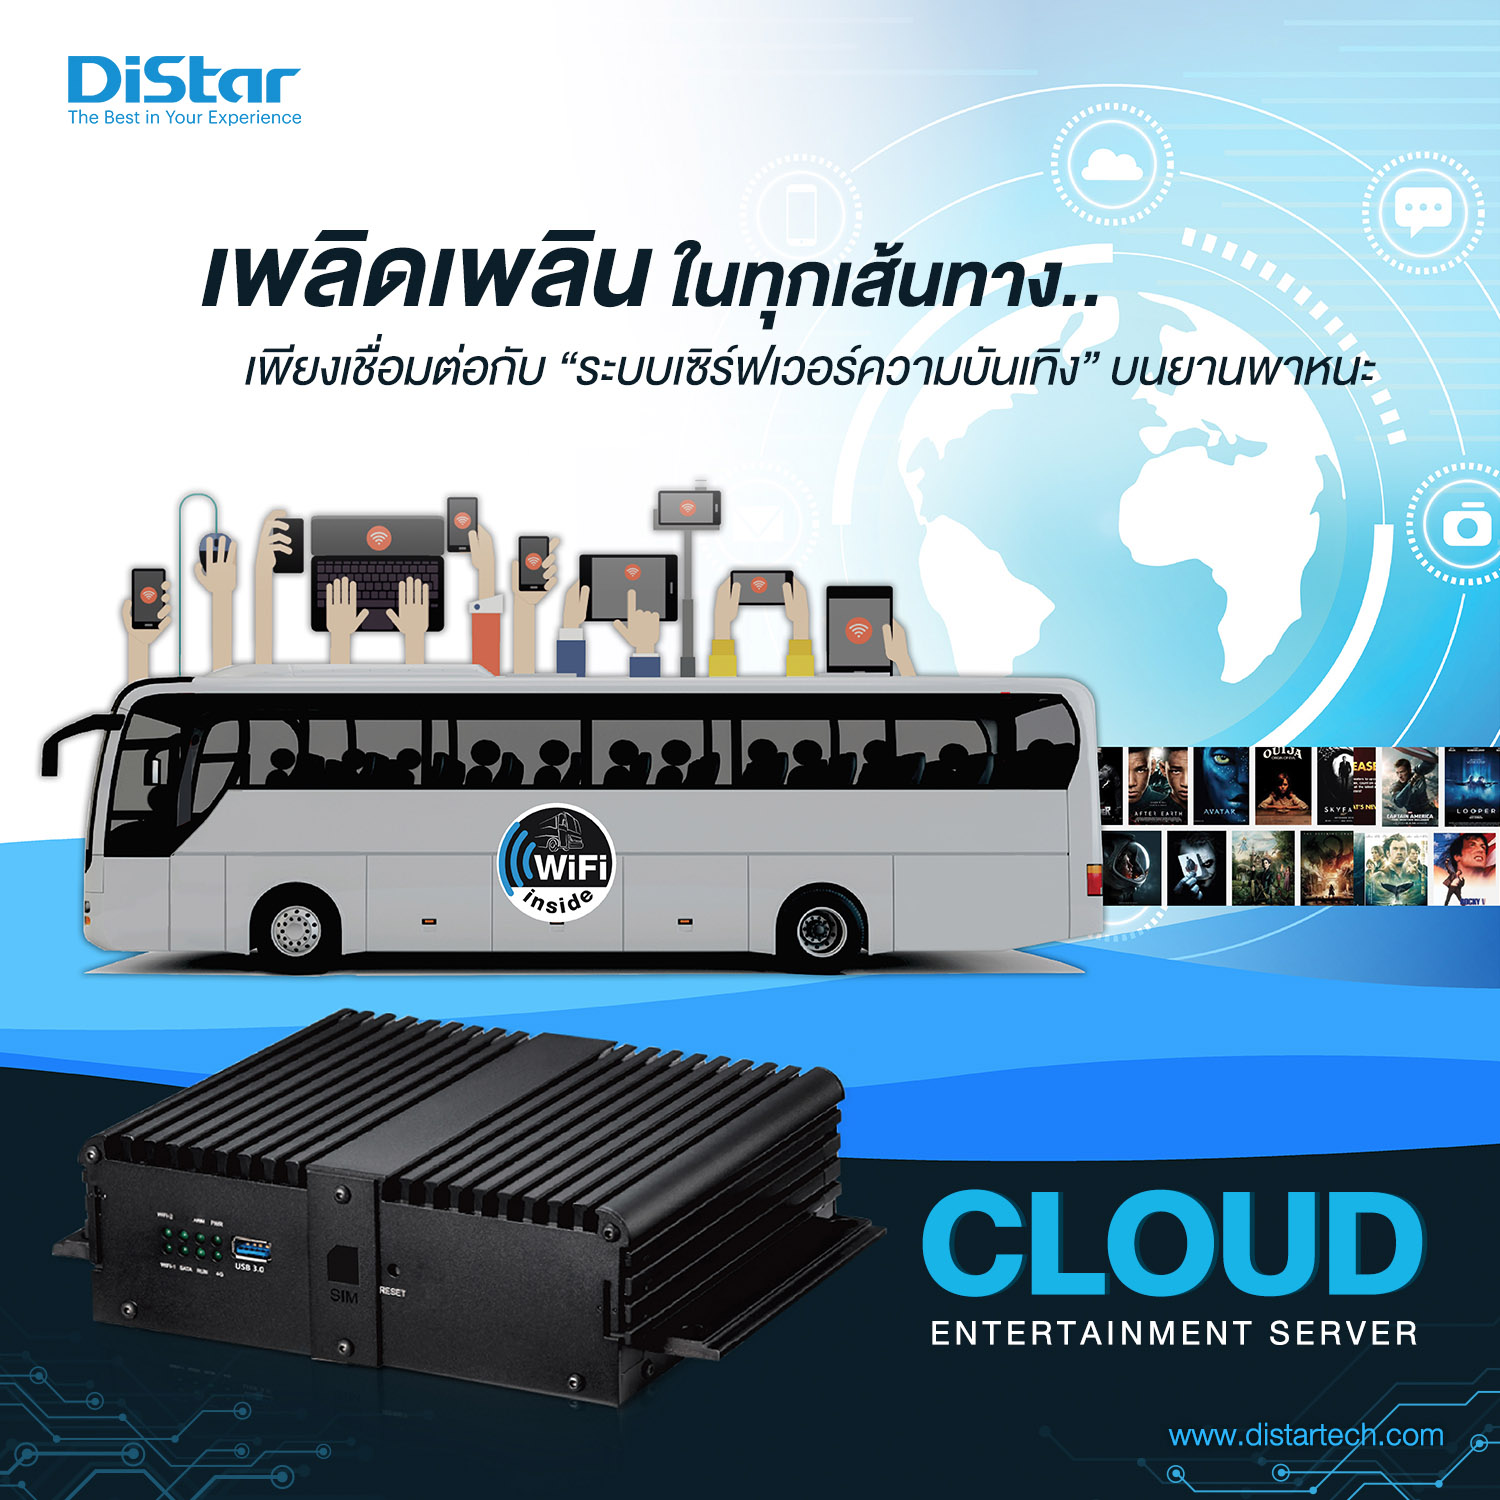 Cloud Entertainment Server